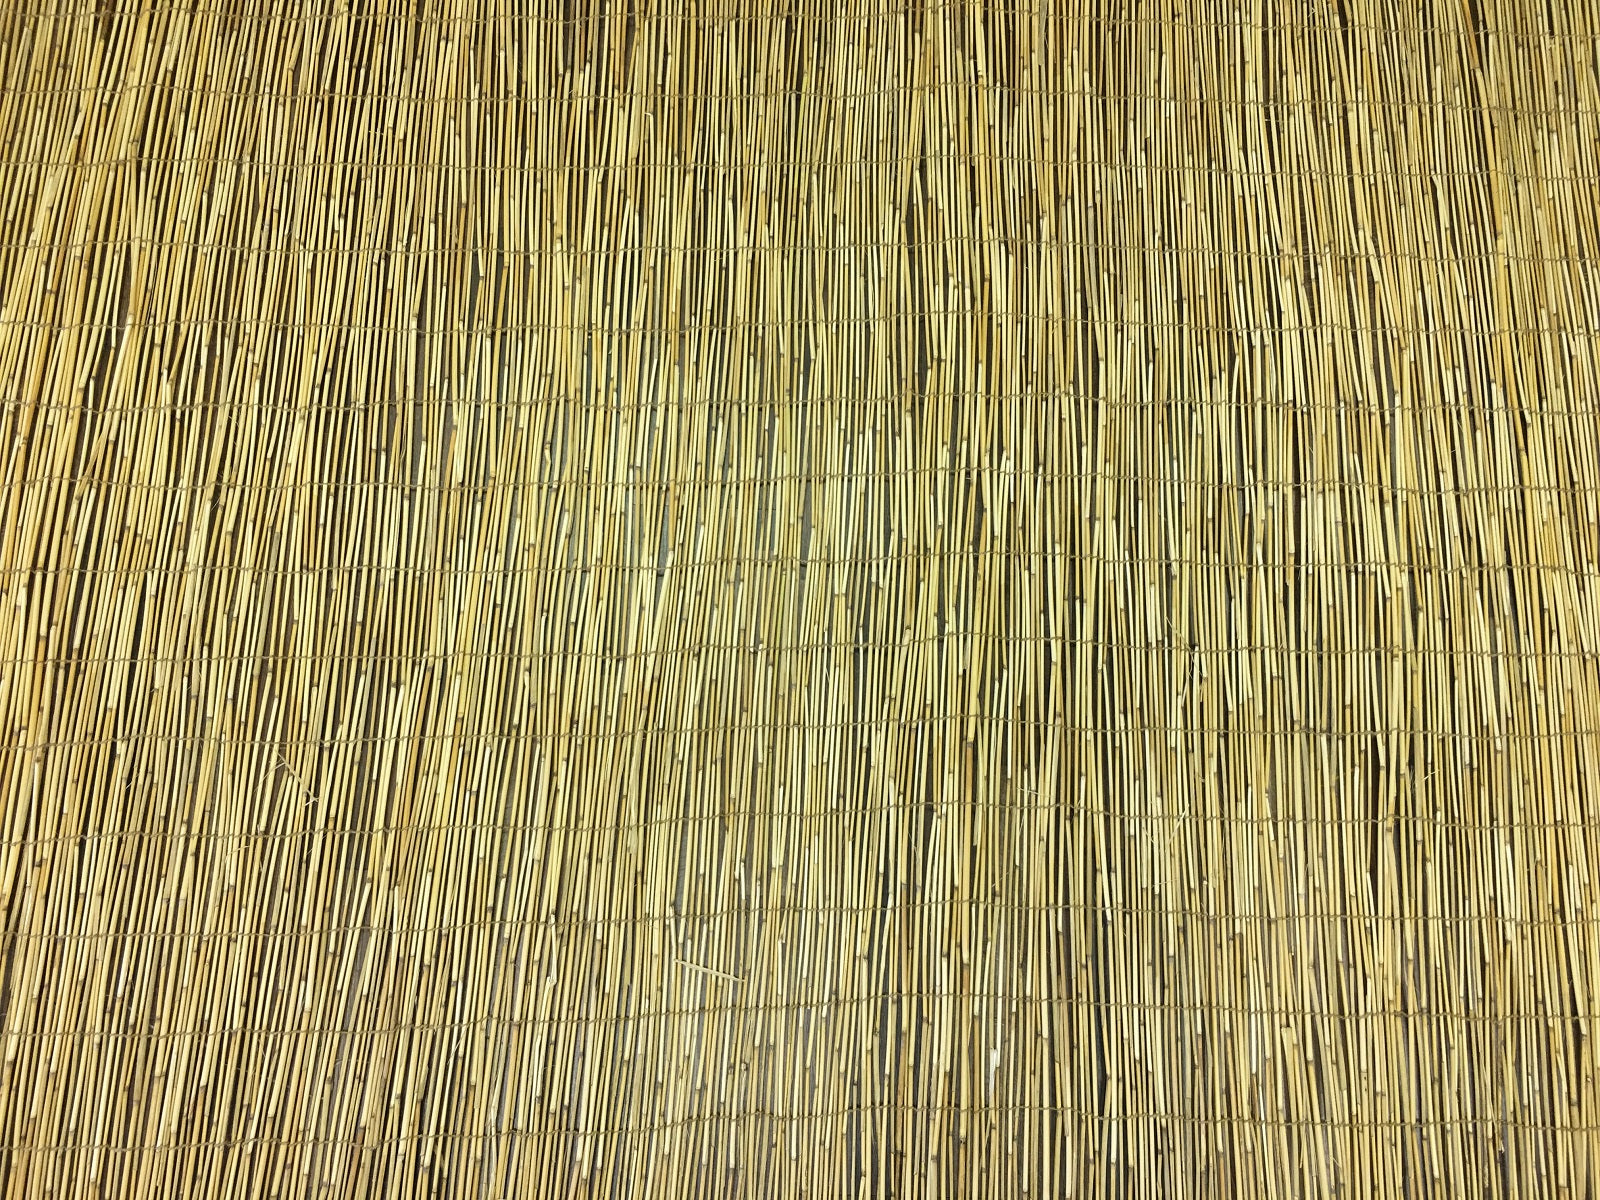 Reed Panel for Fencing and Sukkah Roof - Bamboo Toronto Store